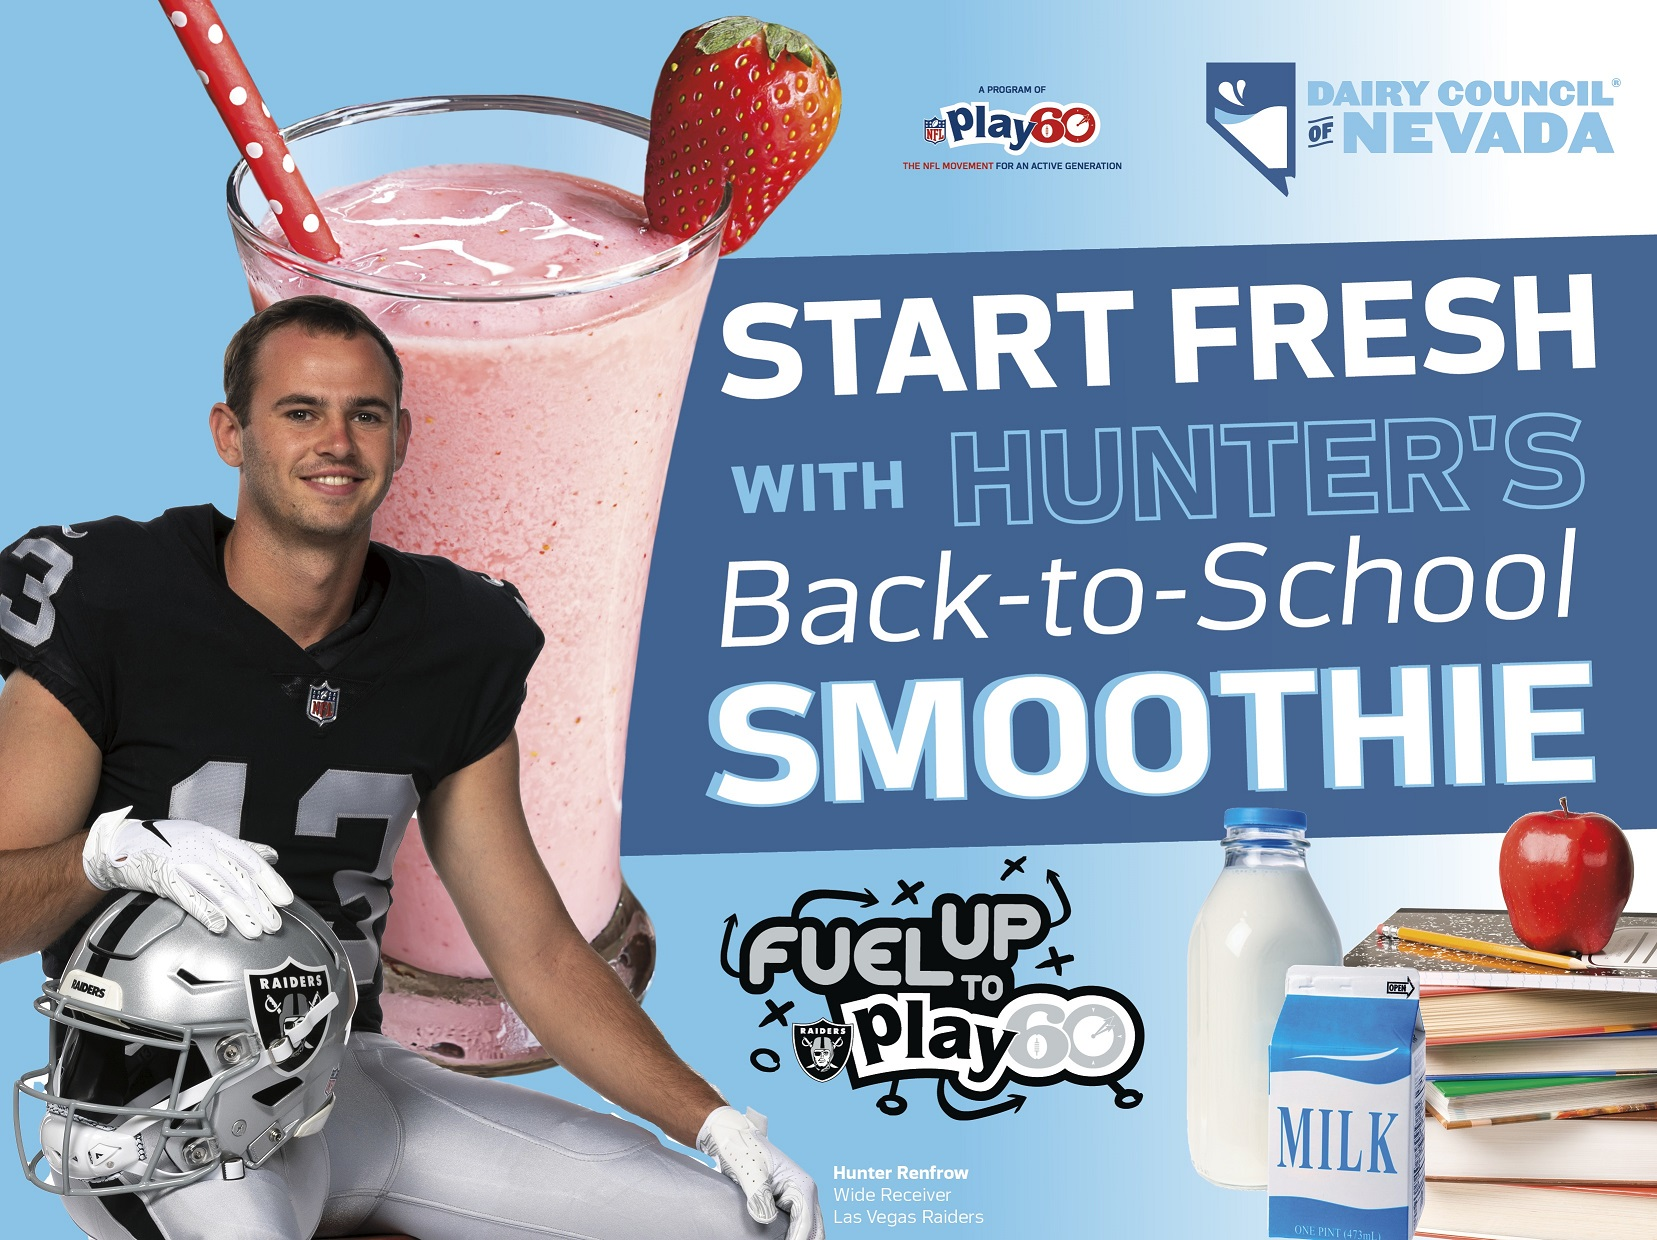 Start Fresh with Hunter's Back-to-School Smoothie Fuel Up to Play 60 Contest